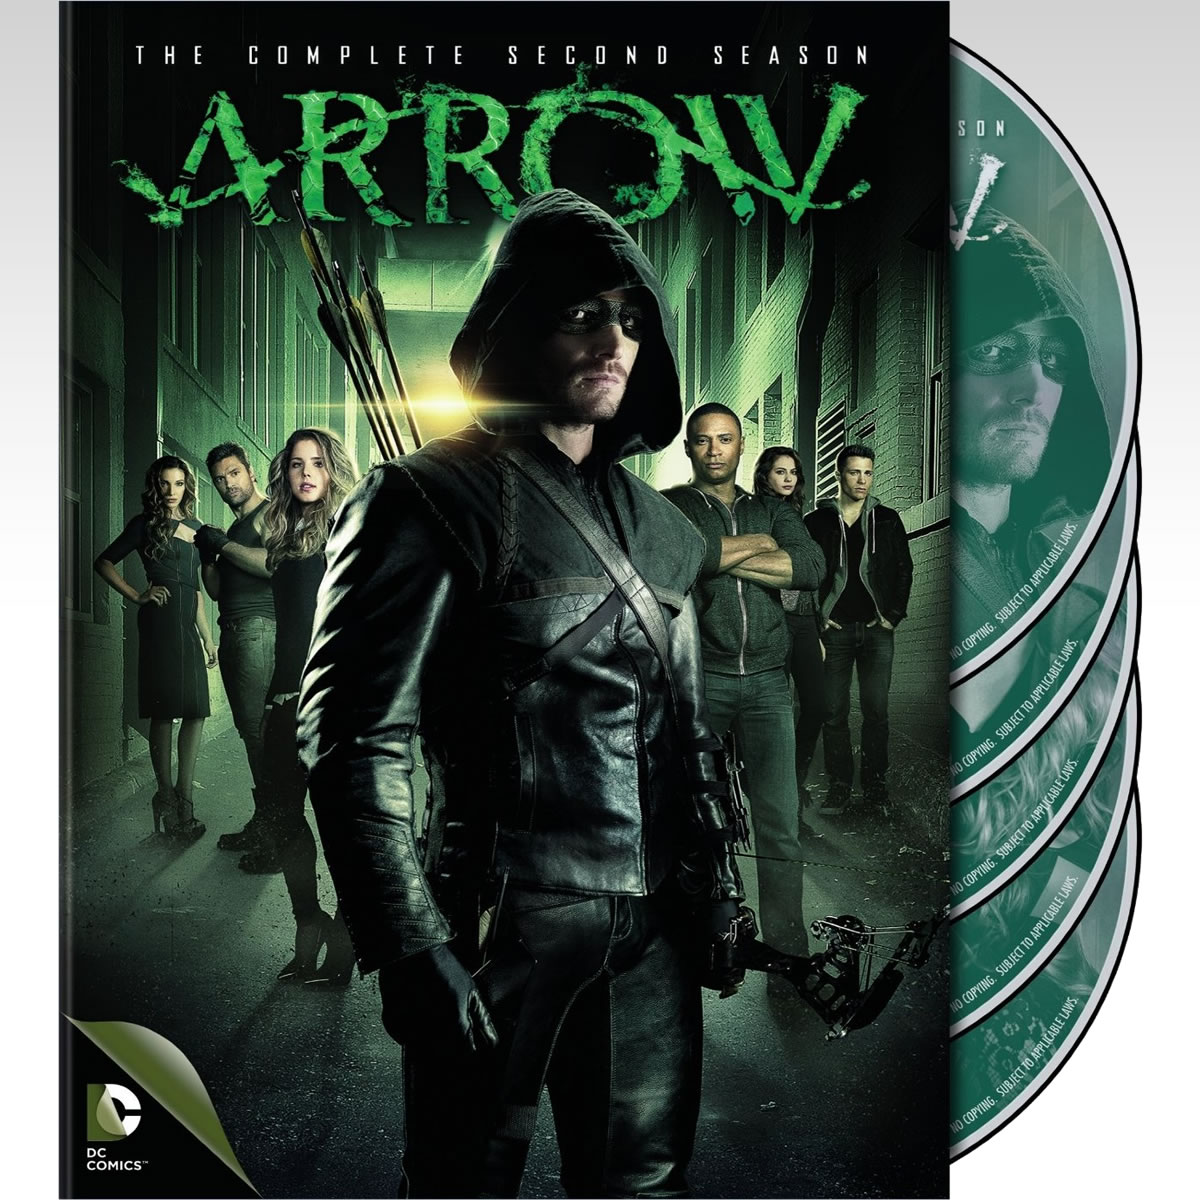 ARROW: THE COMPLETE 2st SEASON - ARROW: 2η ΠΕΡΙΟΔΟΣ (5 DVDs)